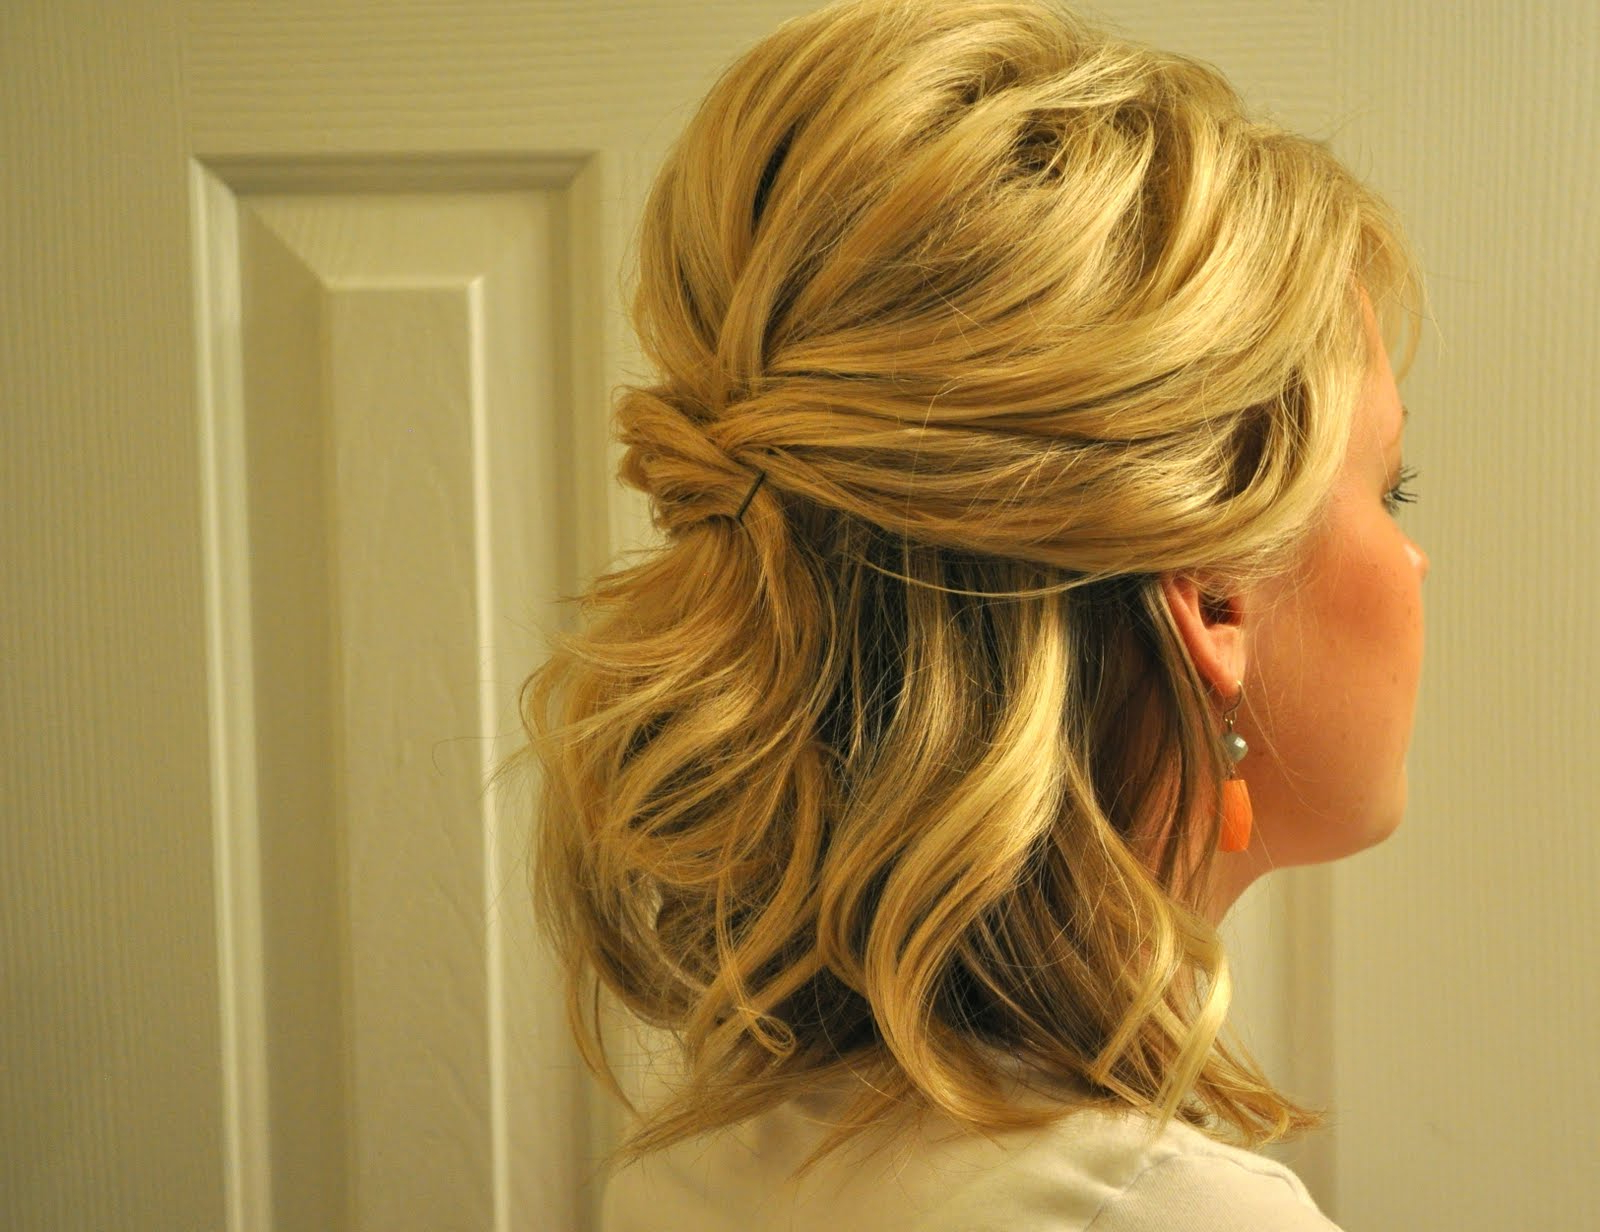 2017 Cute Formal Half Updo Hairstyles For Thick Medium Hair Within Half Up To Full Updo – The Small Things Blog (View 10 of 20)